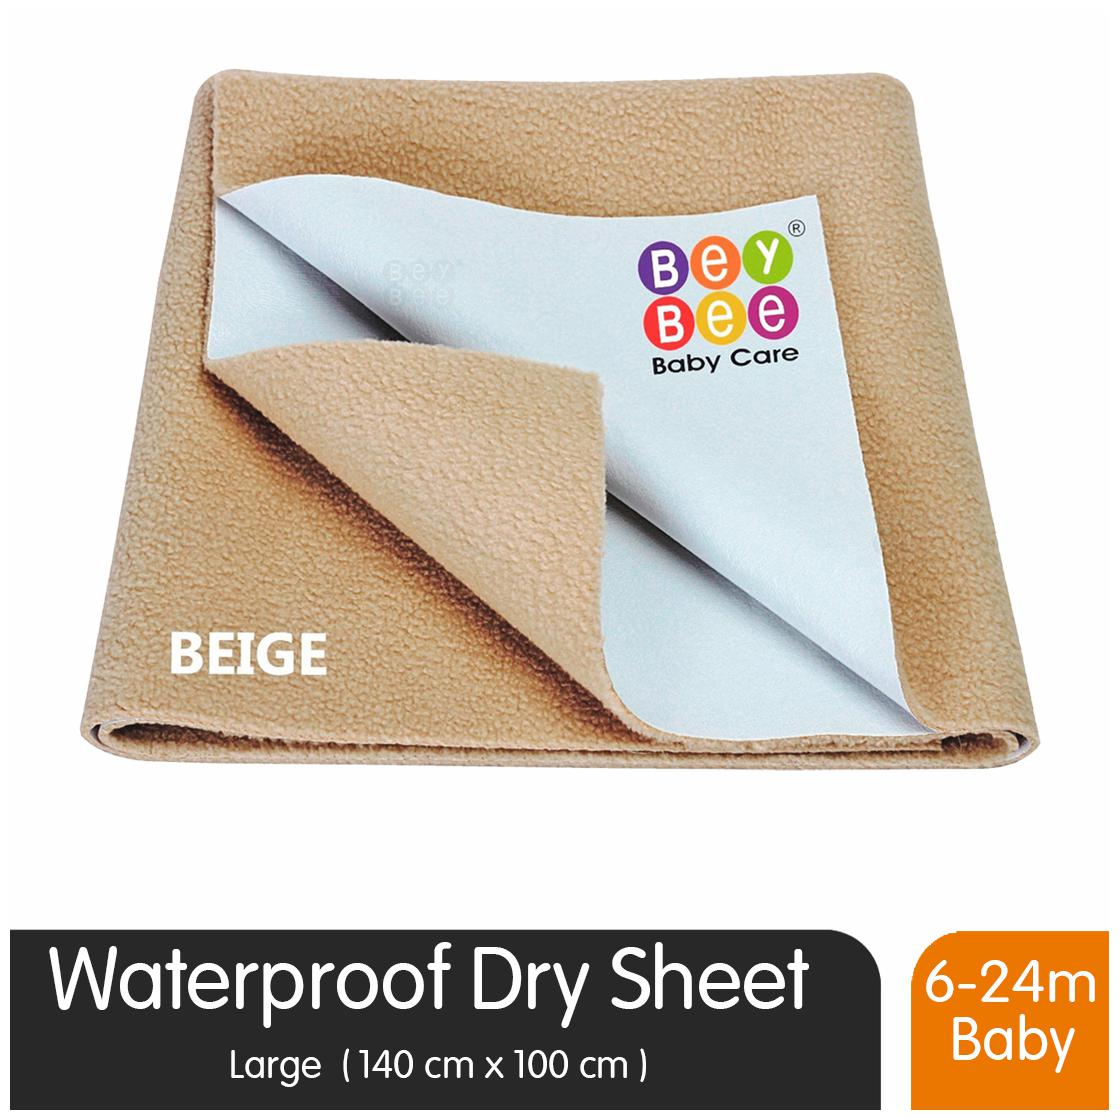 https://assetscdn1.paytm.com/images/catalog/product/F/FA/FASBEY-BEE-QUICBABY1146844E0BBB364/1592972440558_0..jpg